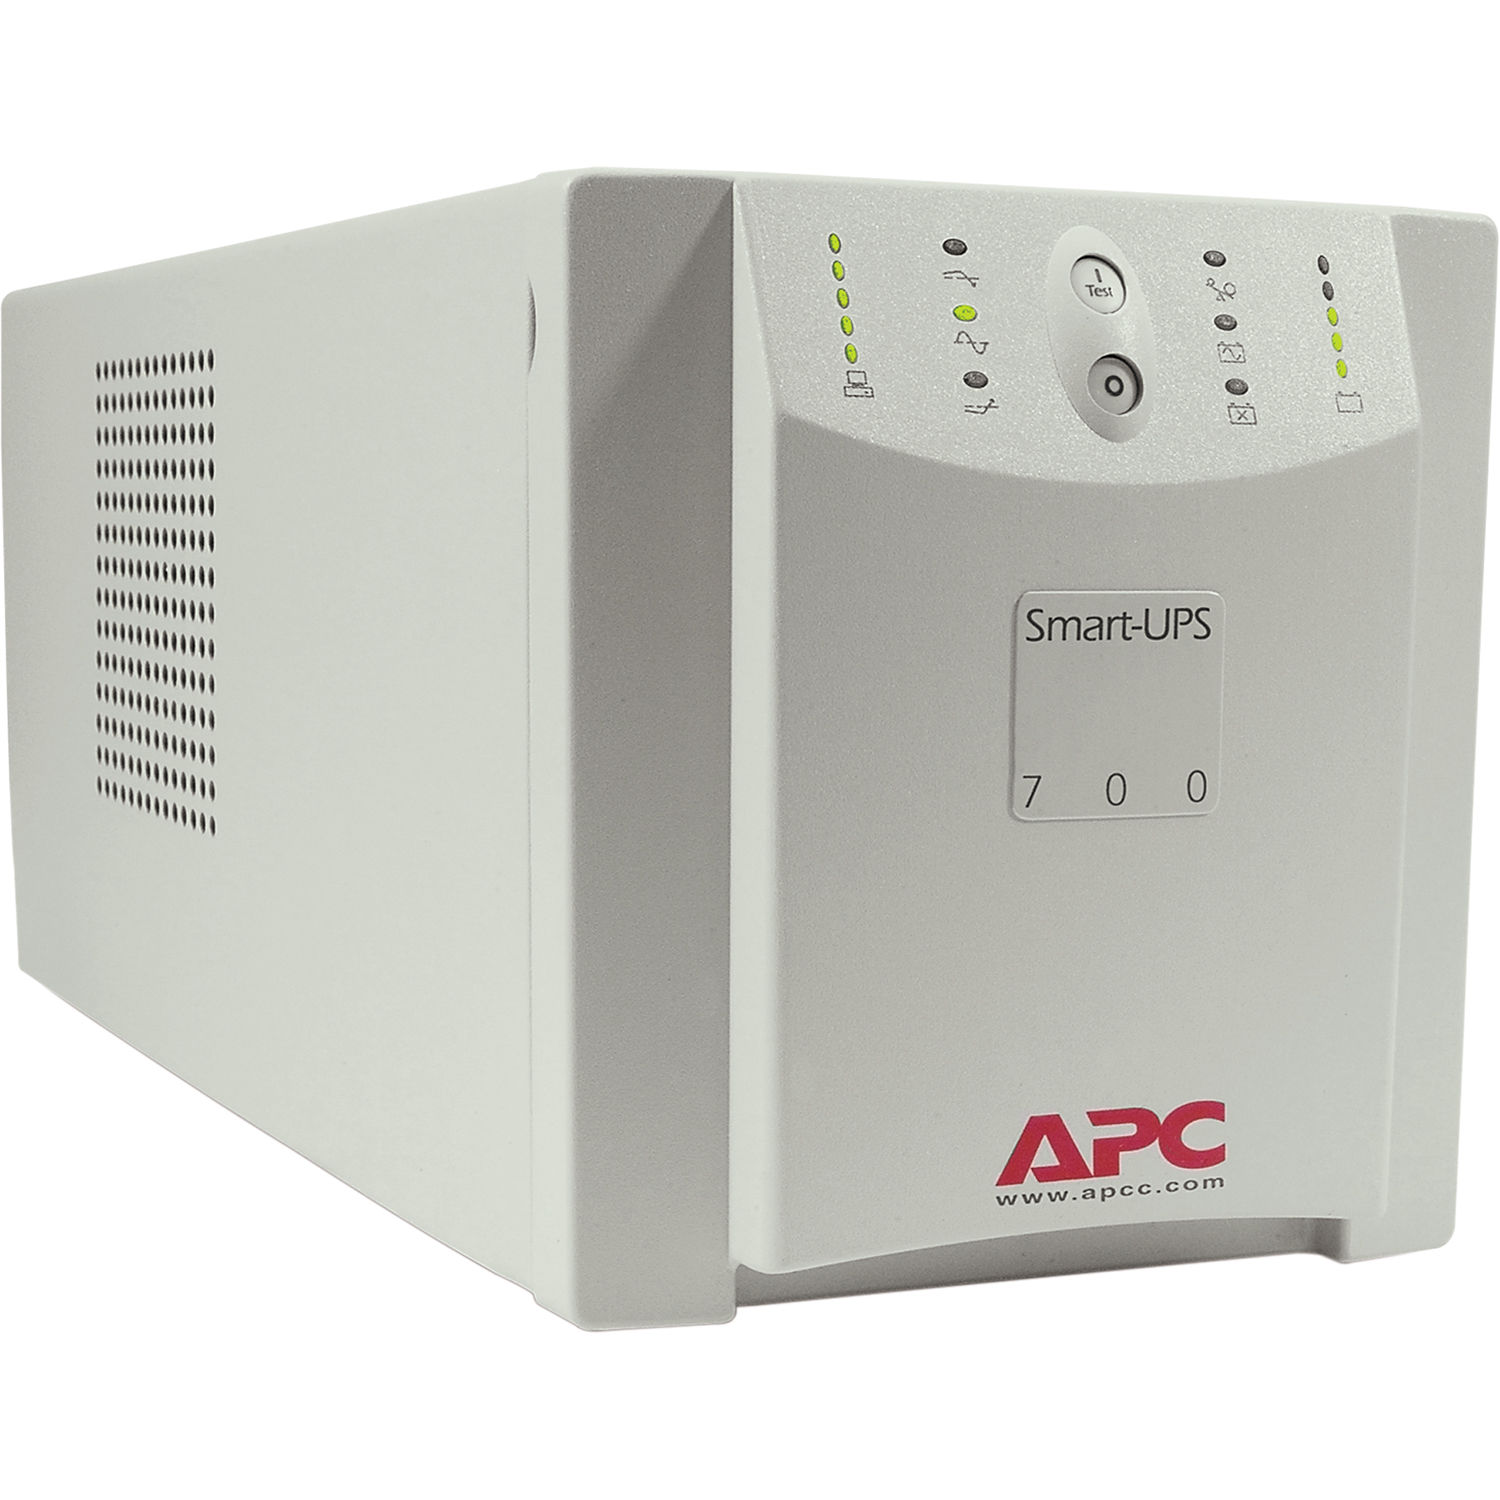 apc su700x167 smart ups uninterruptible power supply su700x167apc su700x167 smart ups uninterruptible power supply